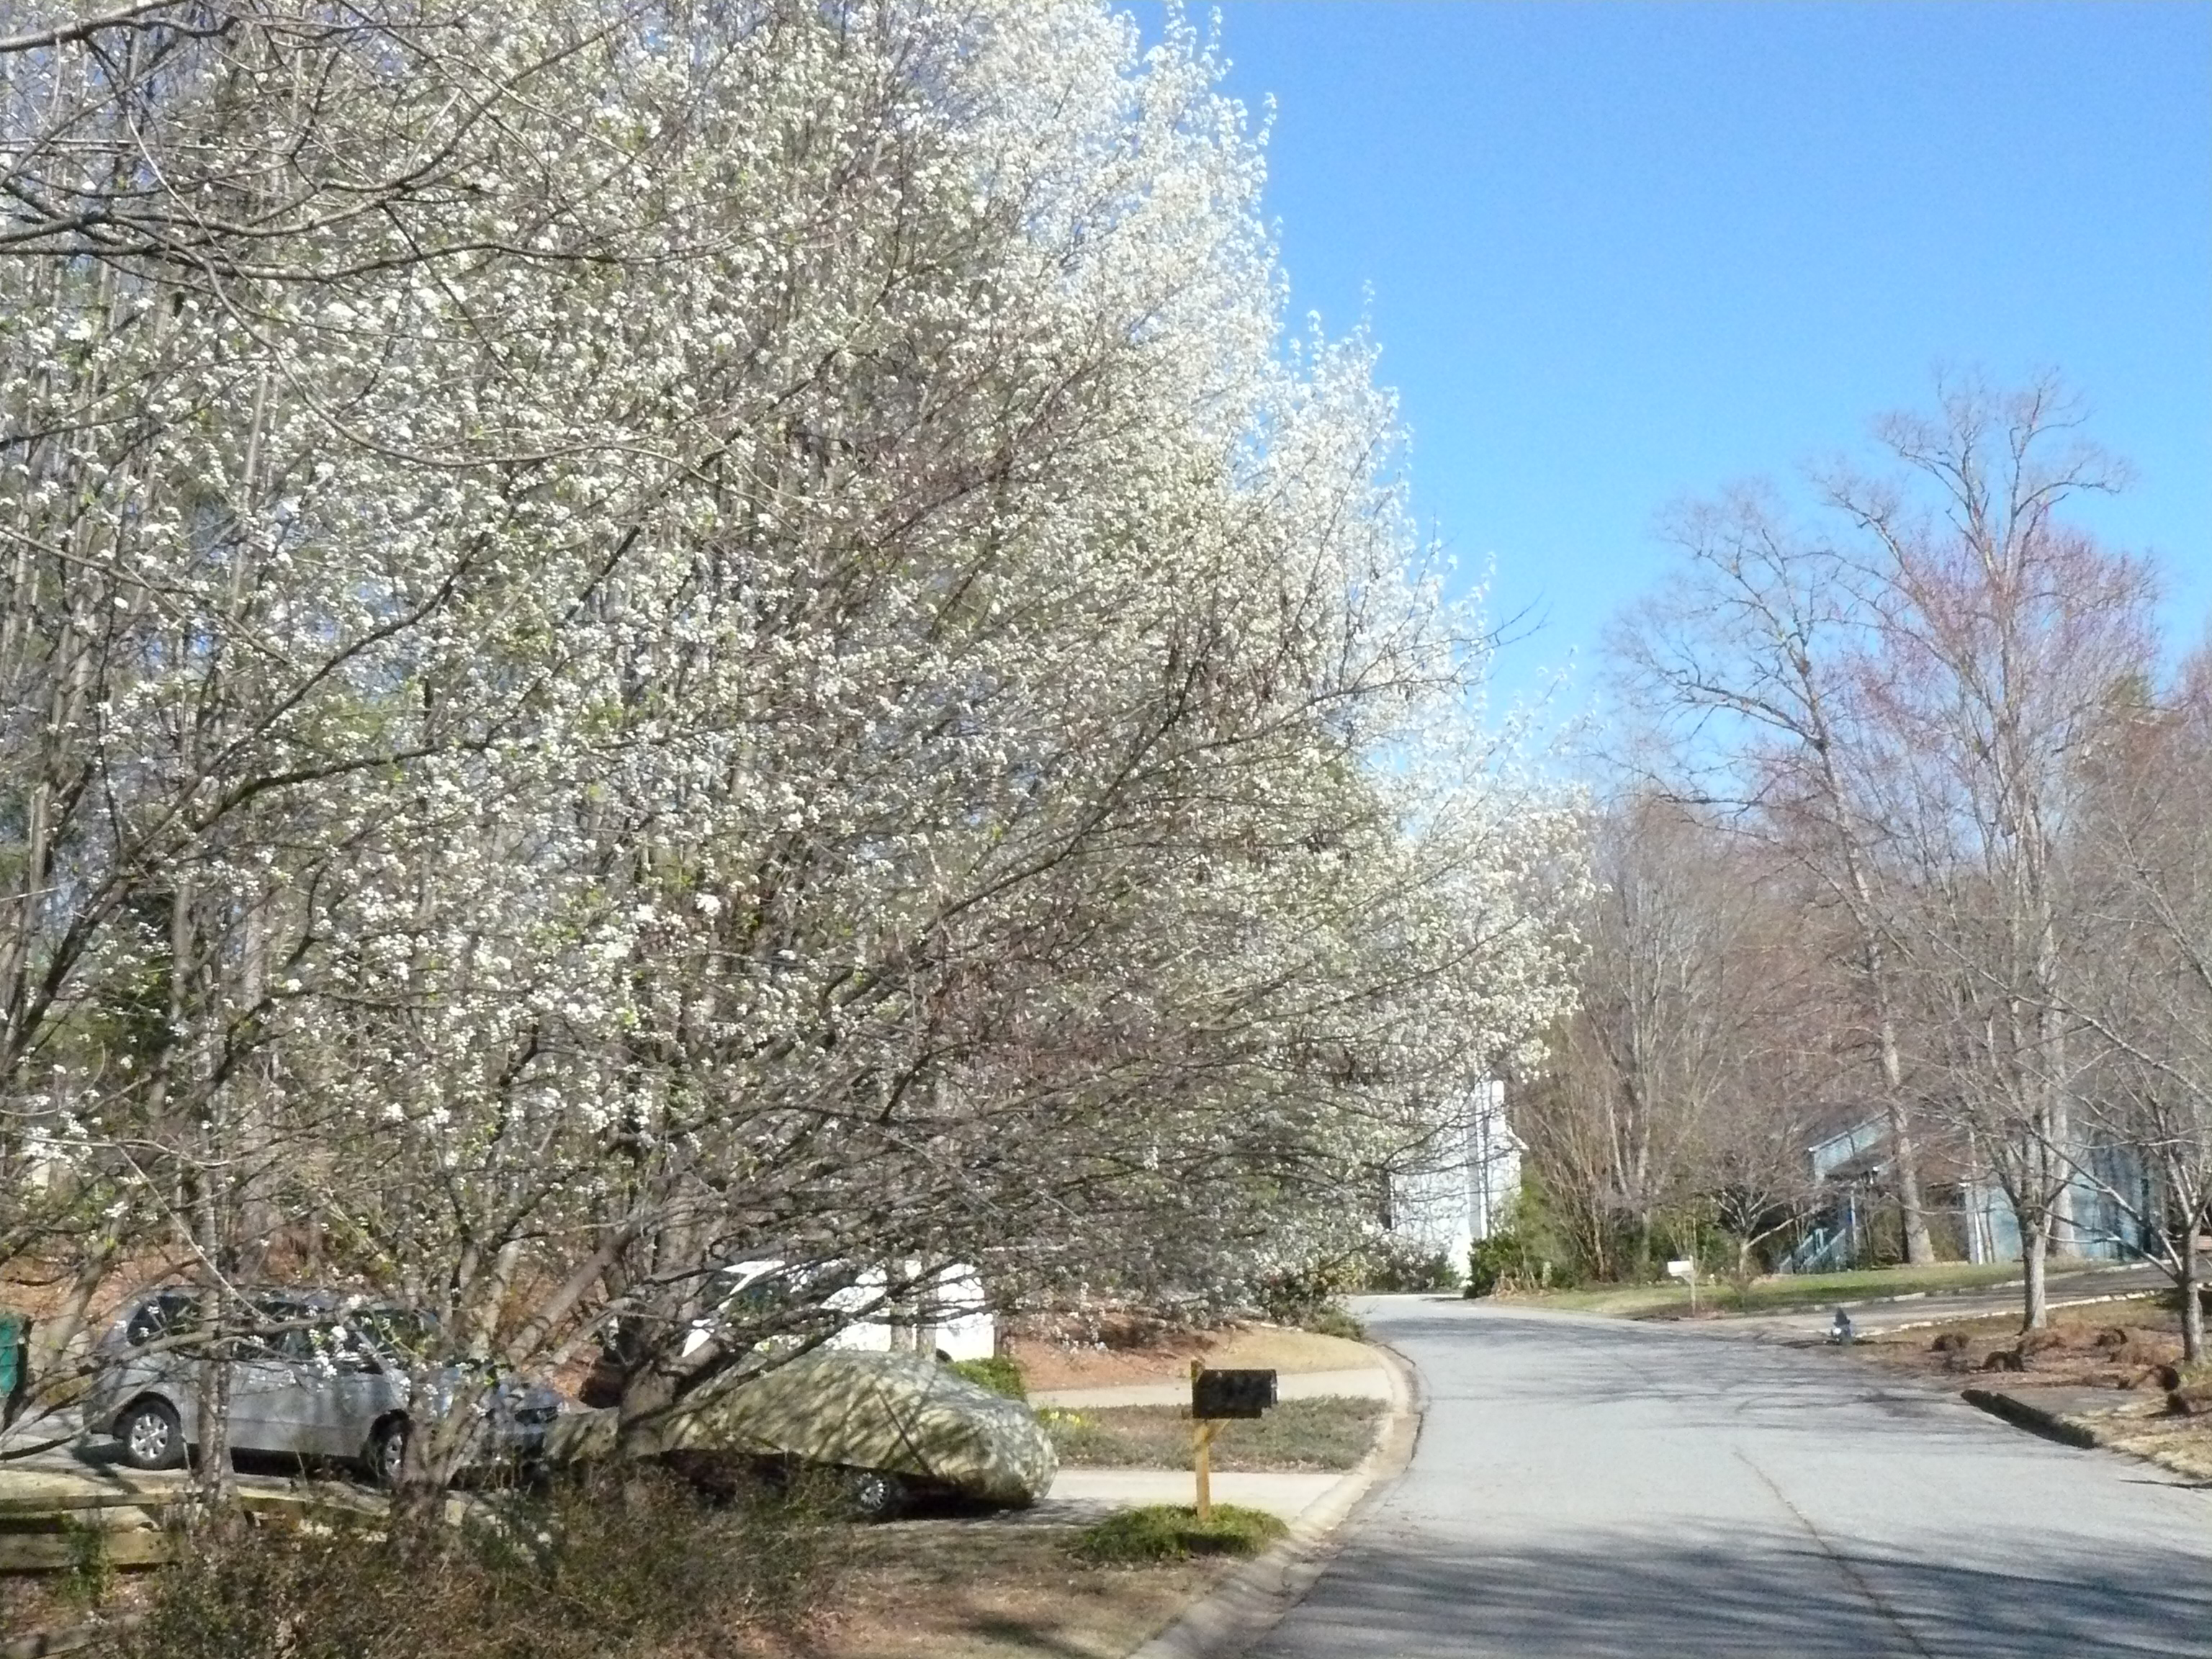 Bradford pear trees a foreclosure don mcclellan 39 s half a Bradford pear